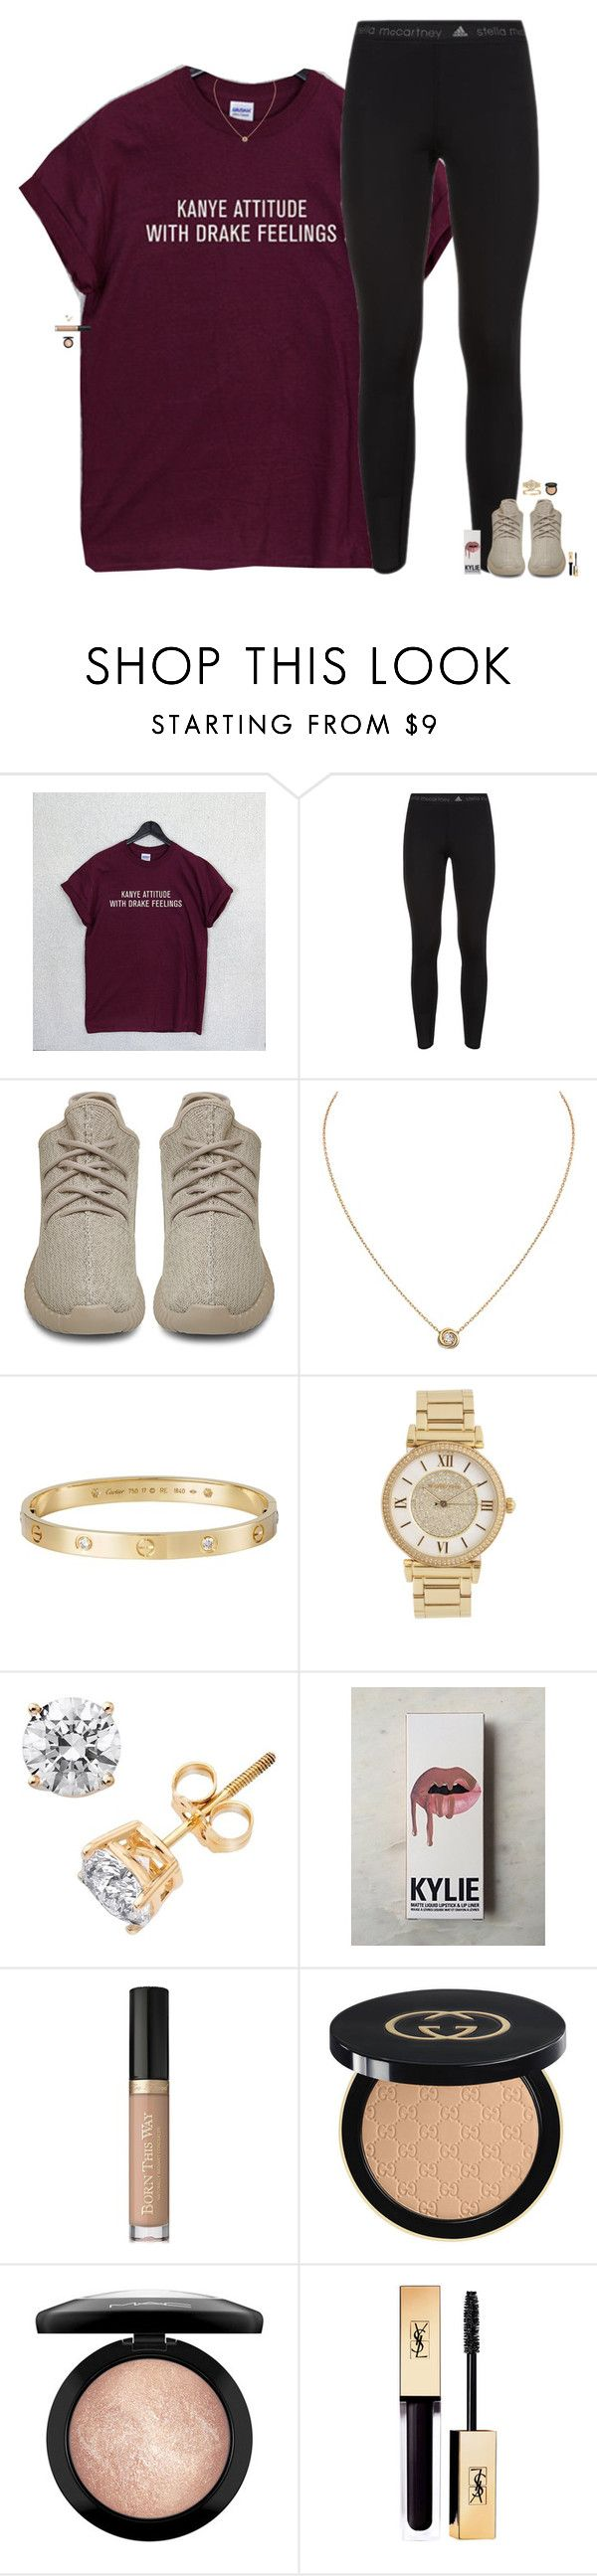 """""""first football game tomorrow."""" by maggie-prep ❤ liked on Polyvore featuring adidas, adidas Originals, Cartier, Michael Kors, Kylie Cosmetics, Too Faced Cosmetics, Gucci, MAC Cosmetics and maggiesbestsets"""